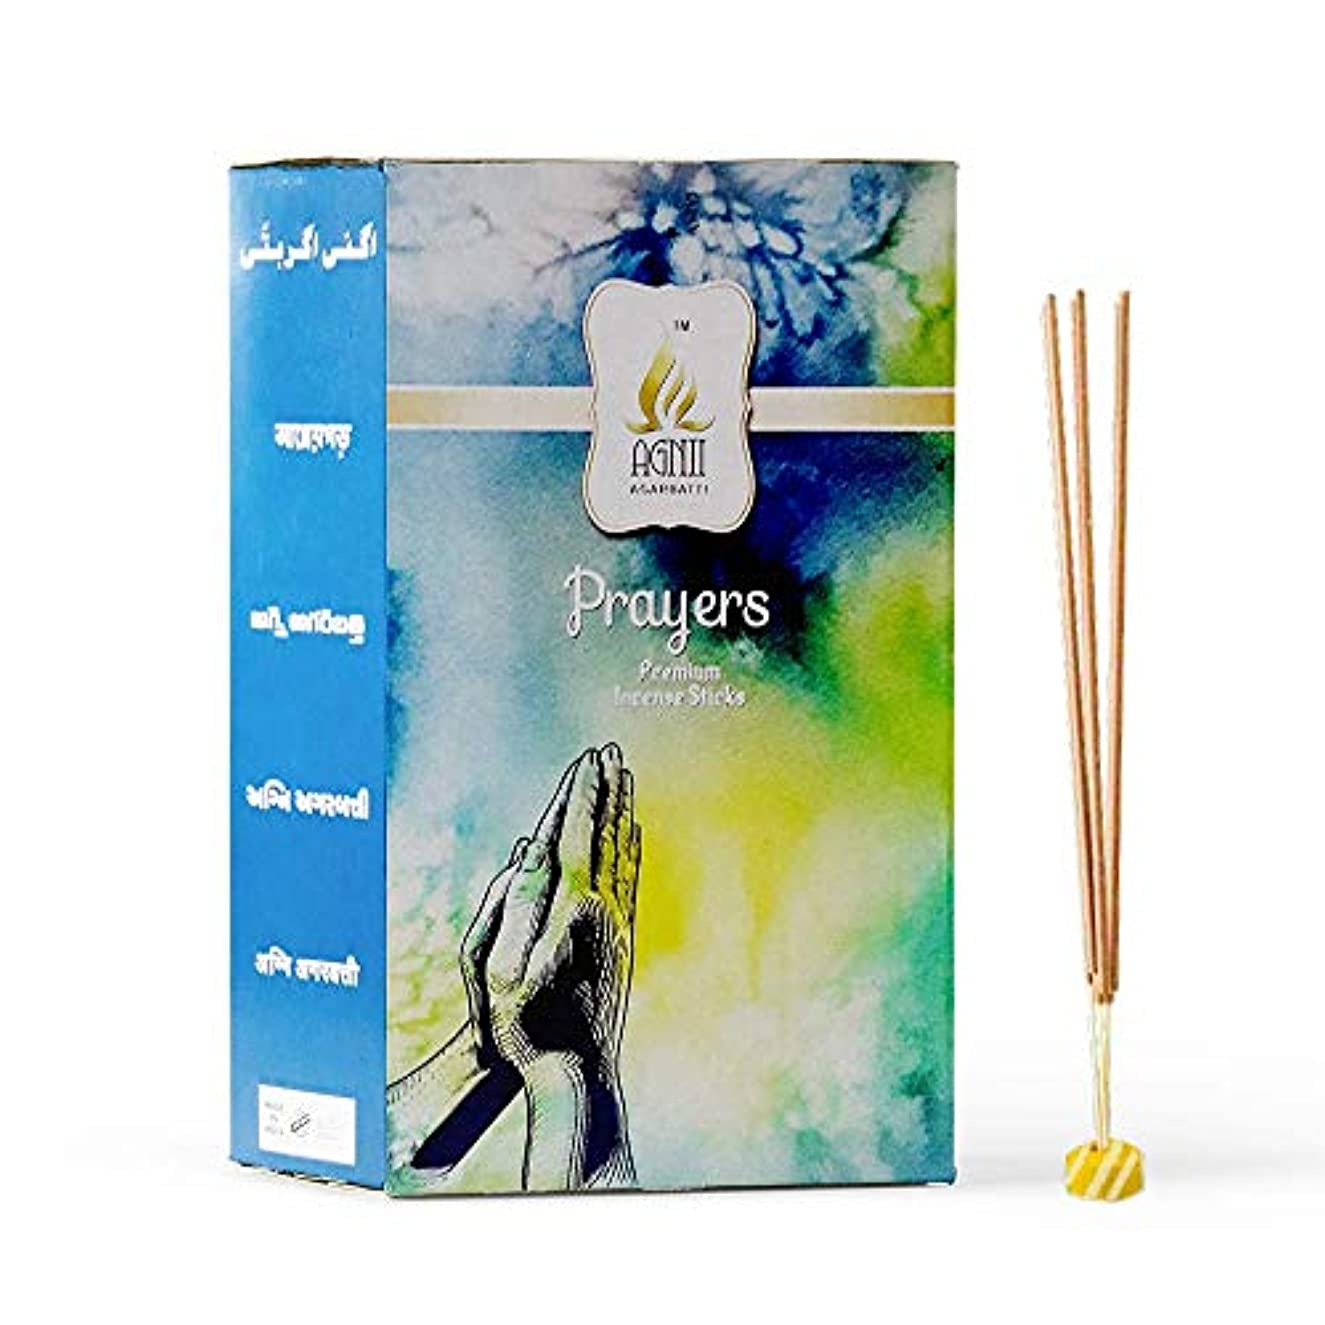 火山学アクションバーガーAGNII AGARBATTI Prayers Incense Sticks (18 GRM_Brown) Pack of 12